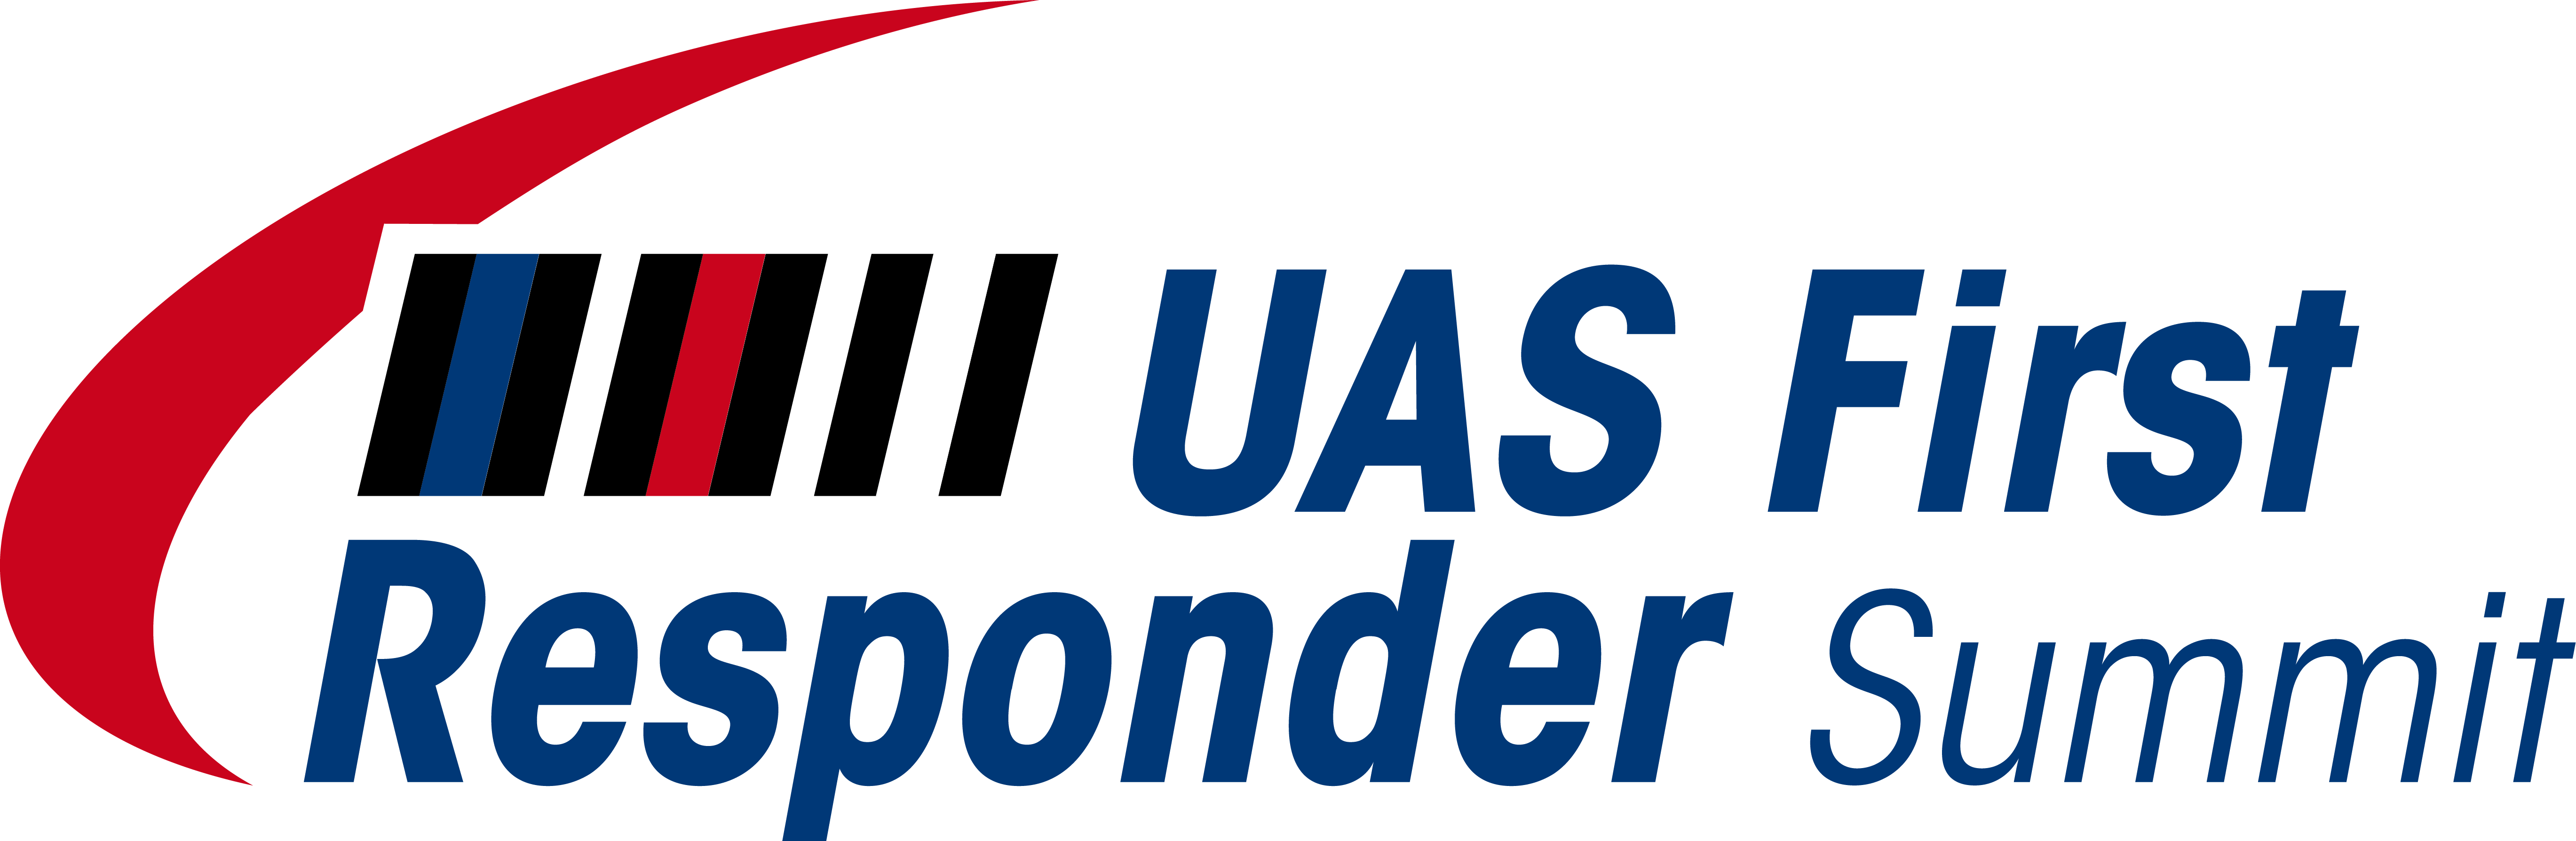 UAS First Responders Summit Logo - InterDrone 2020